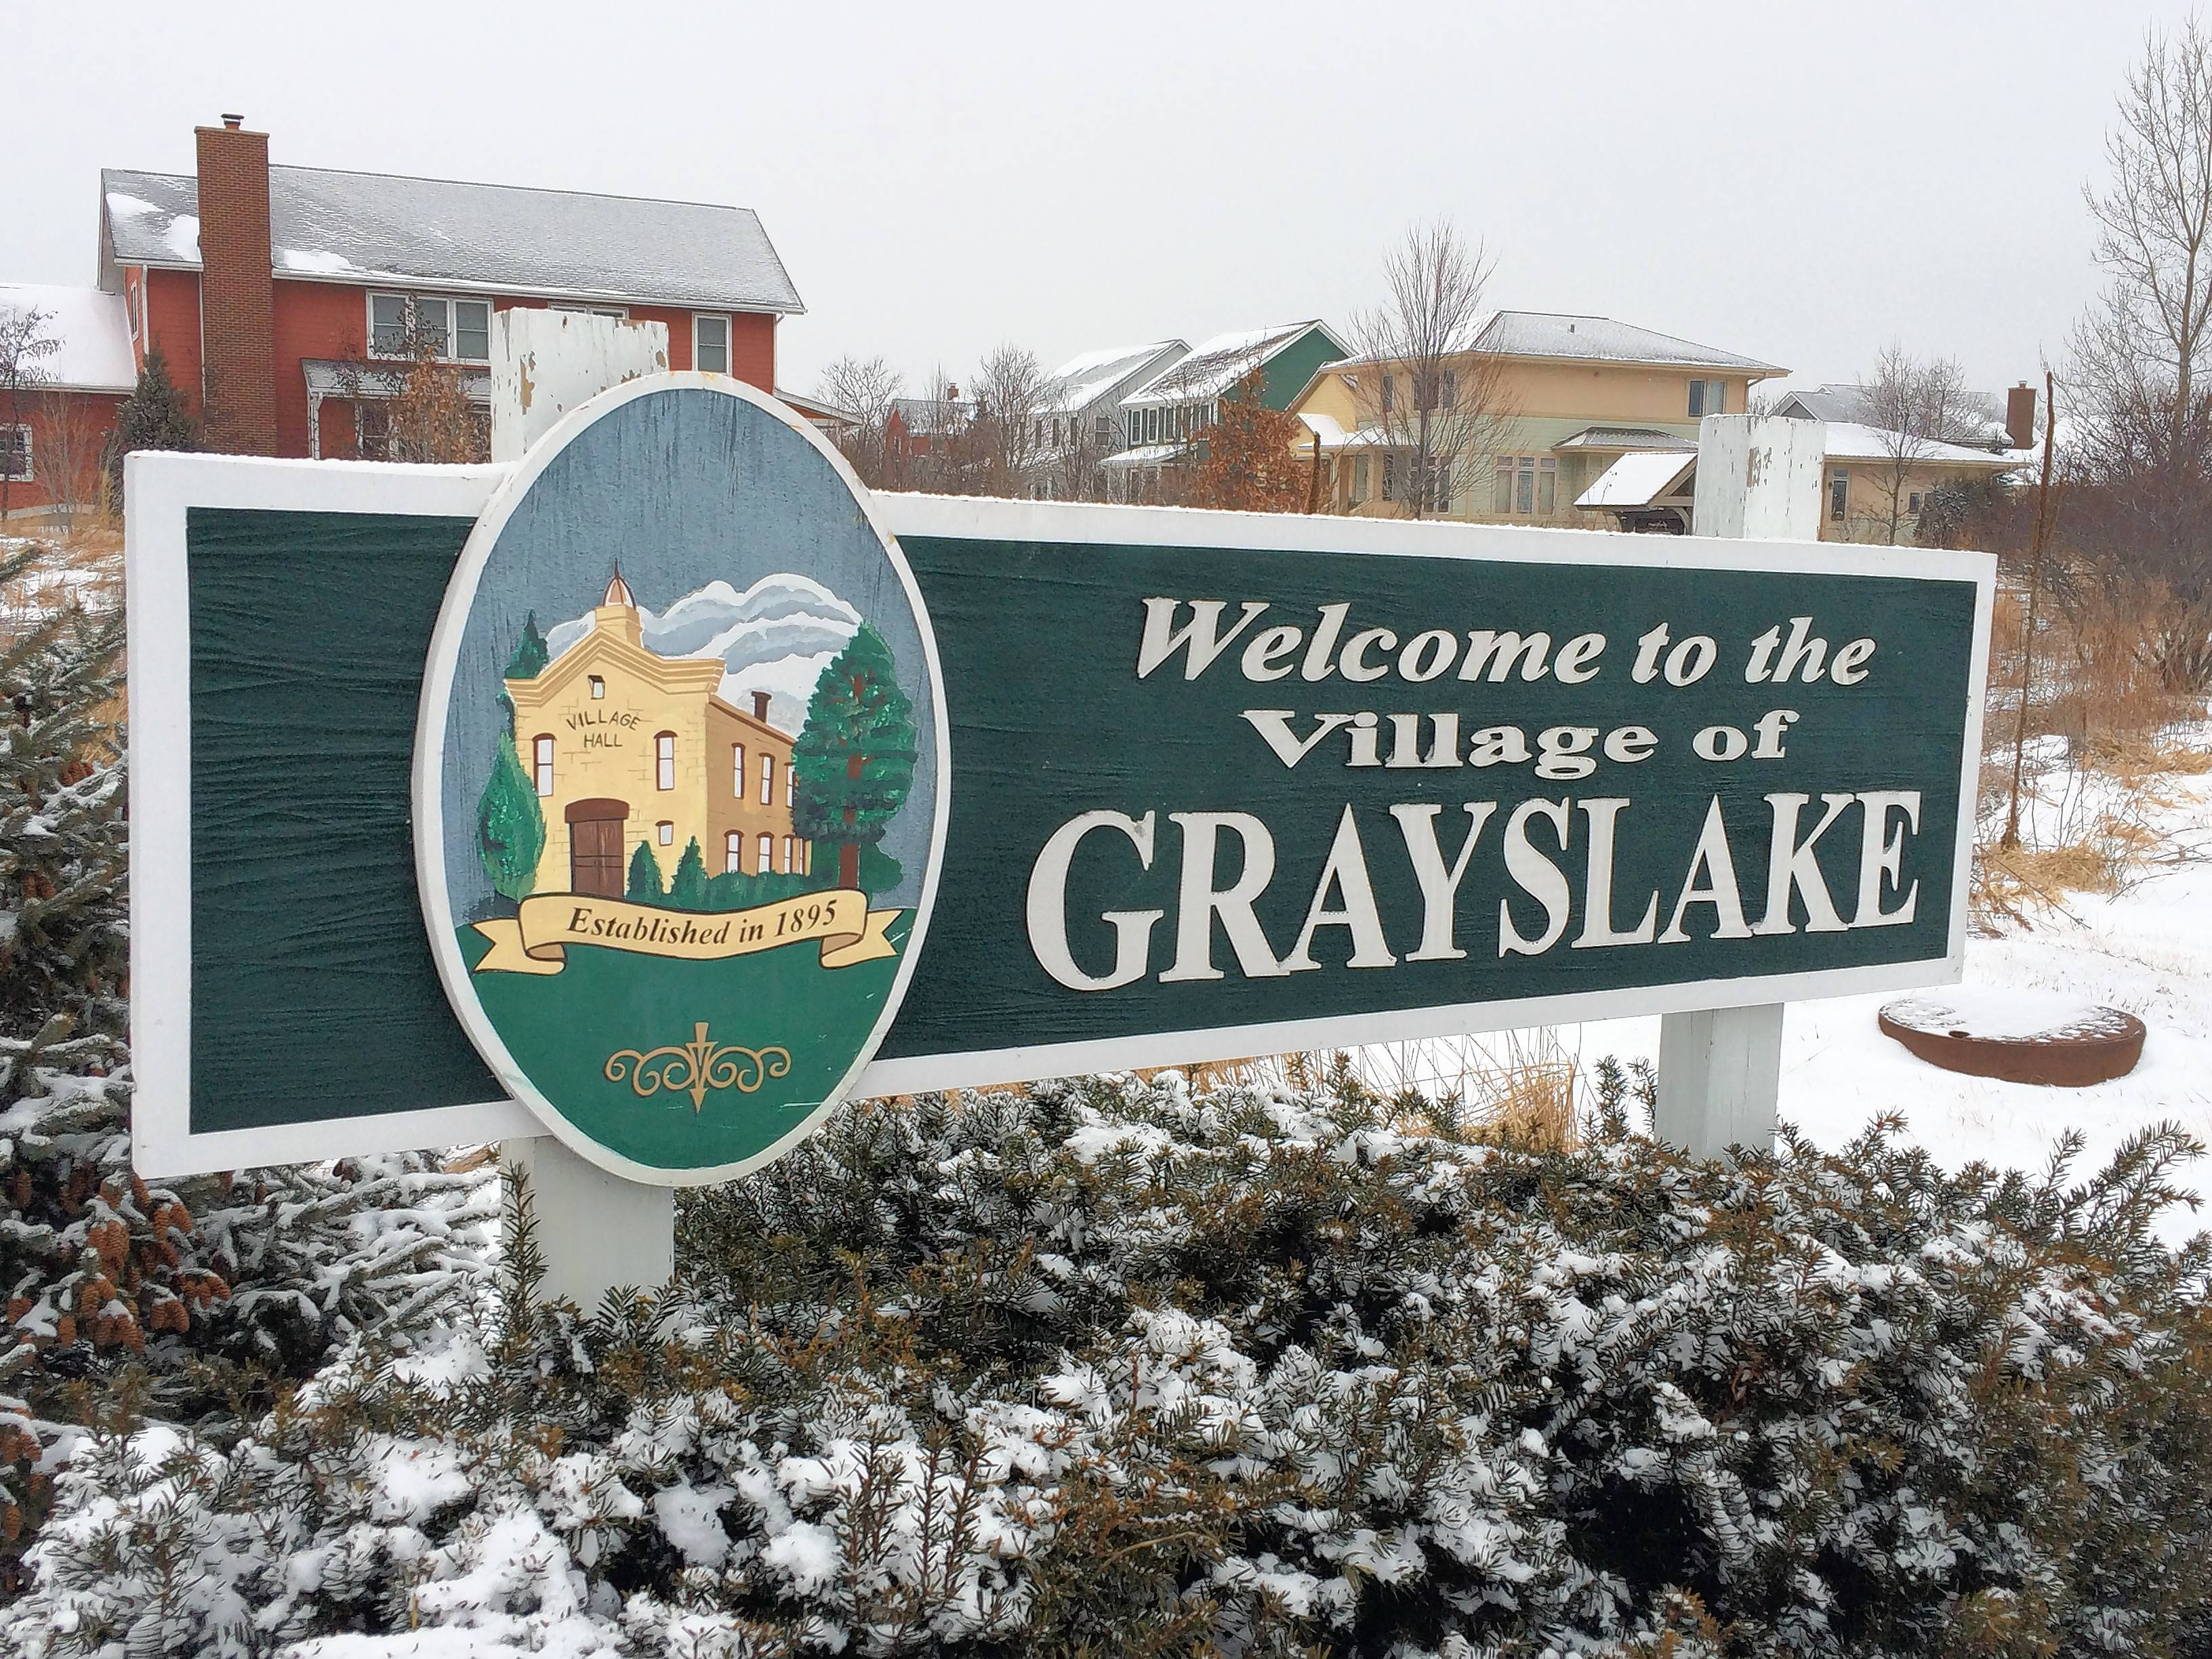 Grayslake incorporated in 1895. The town now boasts more than 20,000 people.